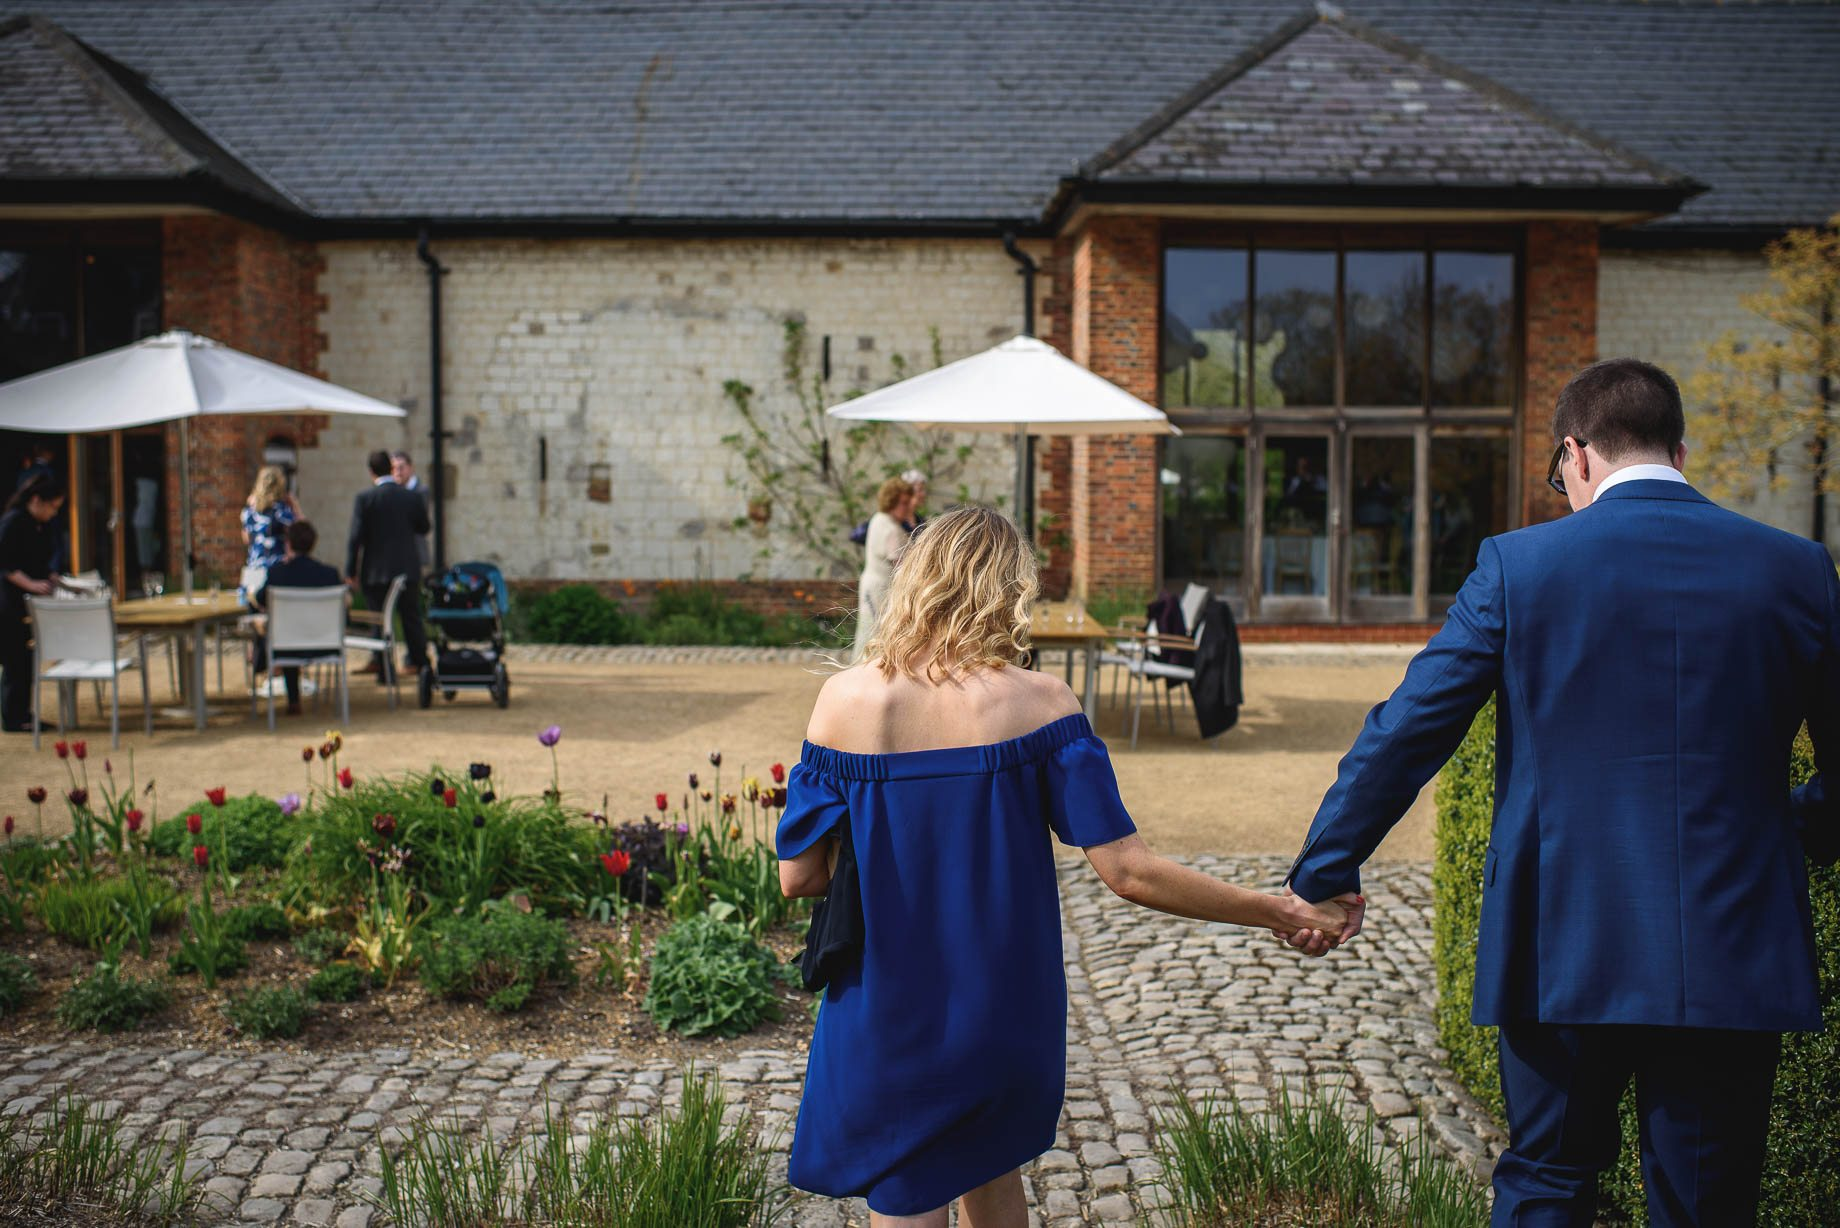 Bury Court Barn wedding photography by Guy Collier - Heather and Pat (108 of 170)